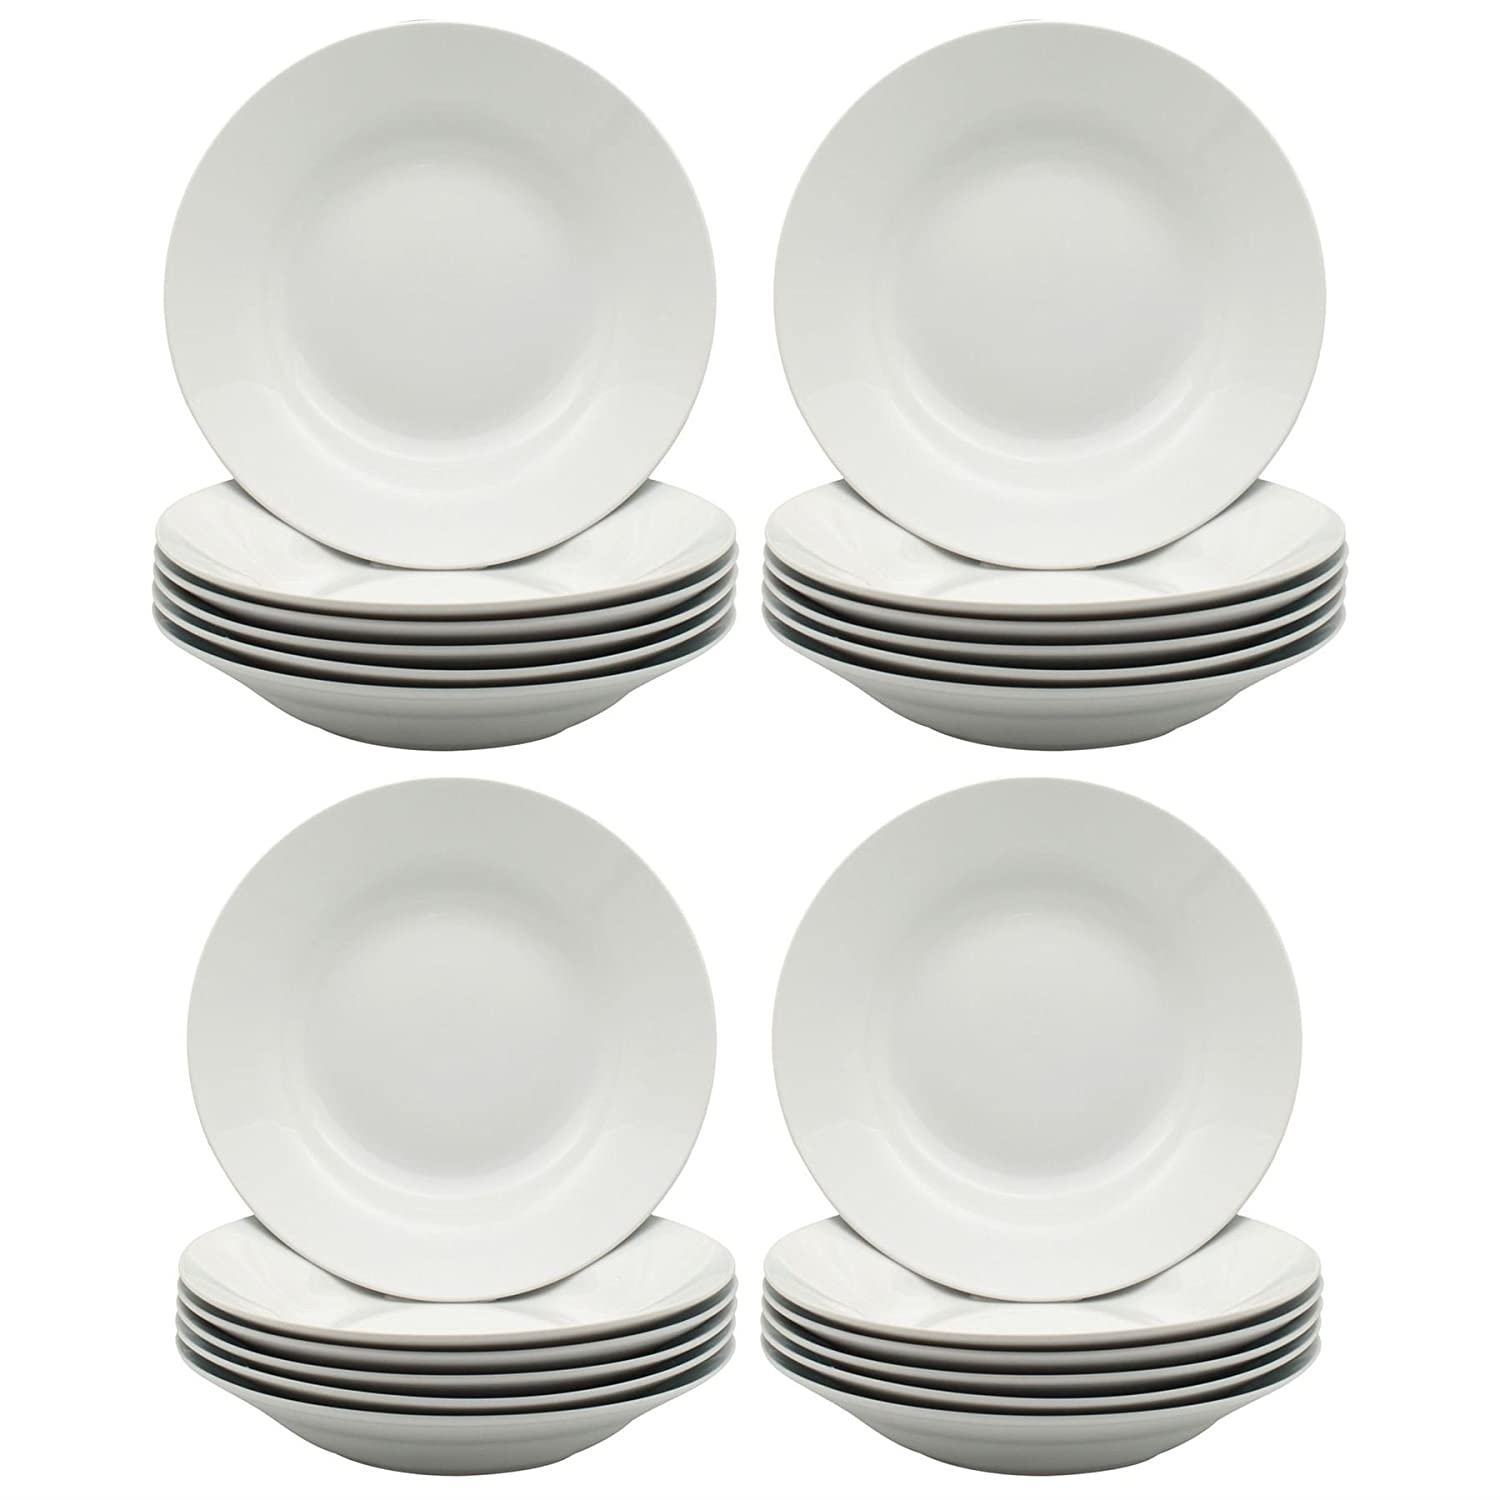 Argon Tableware White Rimmed Soup/Pasta / Cereal/Bowls - 230mm (9